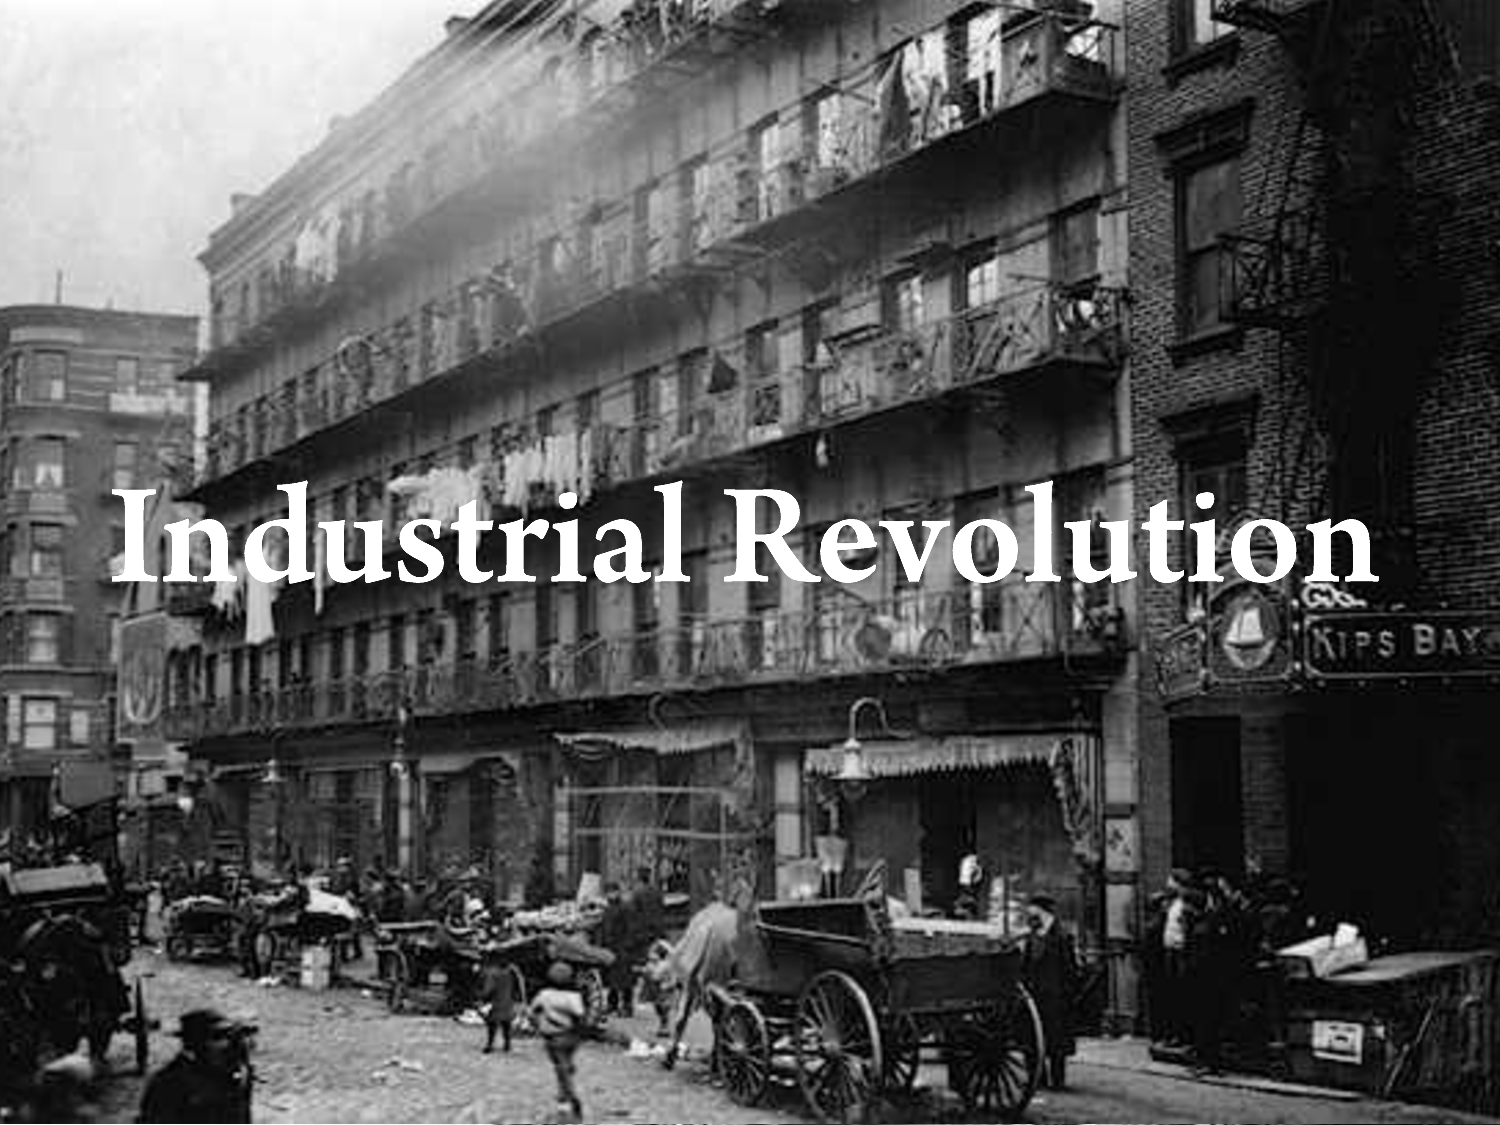 Industrialization in the 18th and 19th